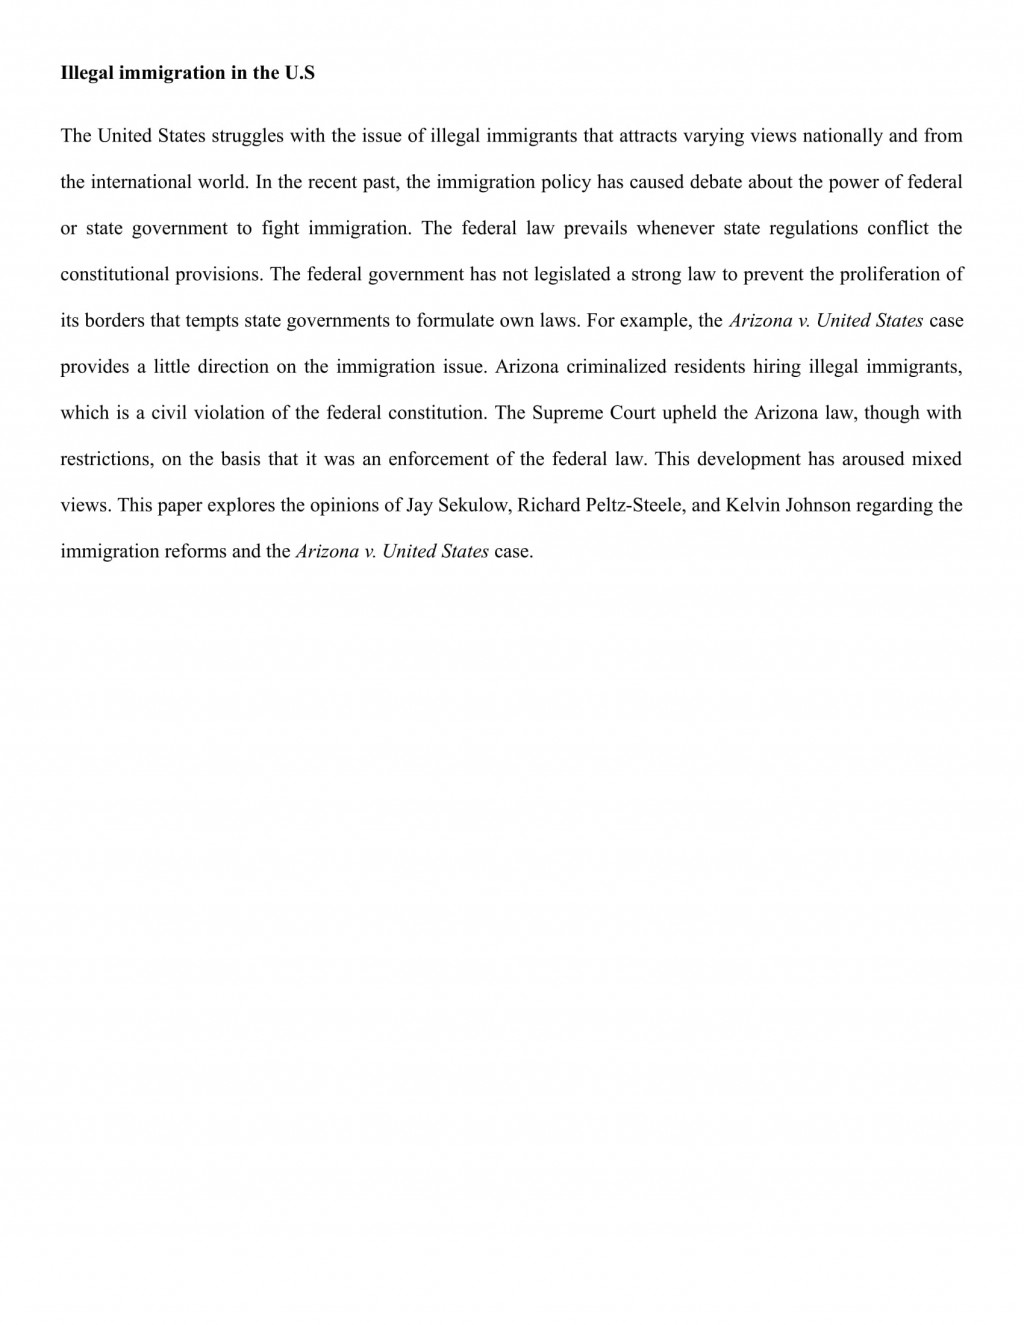 016 Essay Illegal Immigration Essays In Texas On Argumentative Topics For Research Pap Wonderful Laws Large